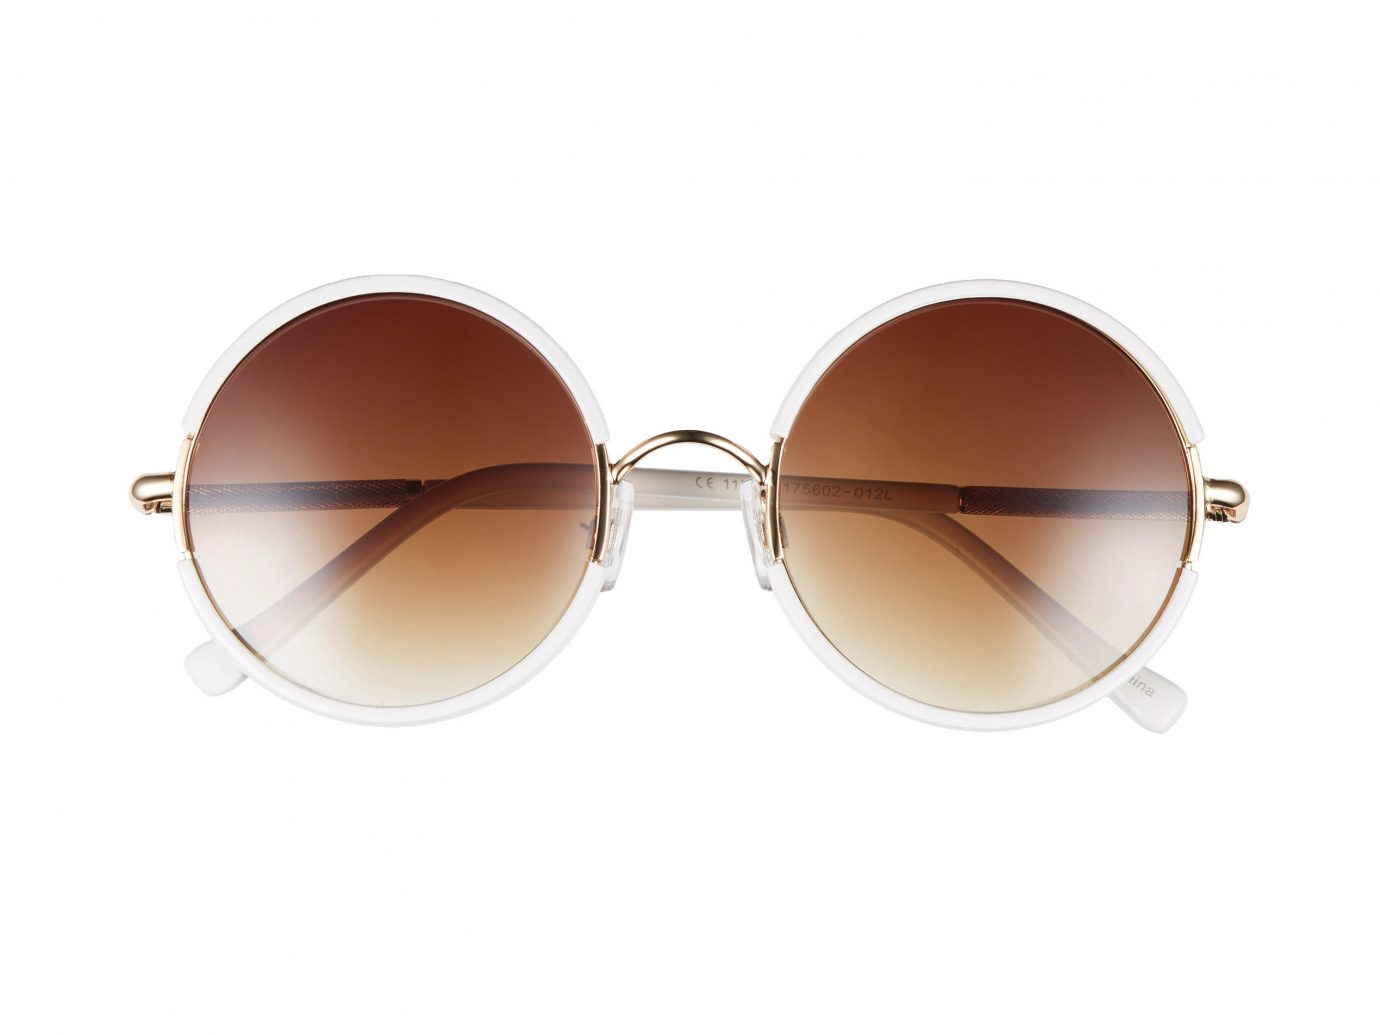 Trip Ideas eyewear sunglasses vision care glasses brown product design spectacles product beige font